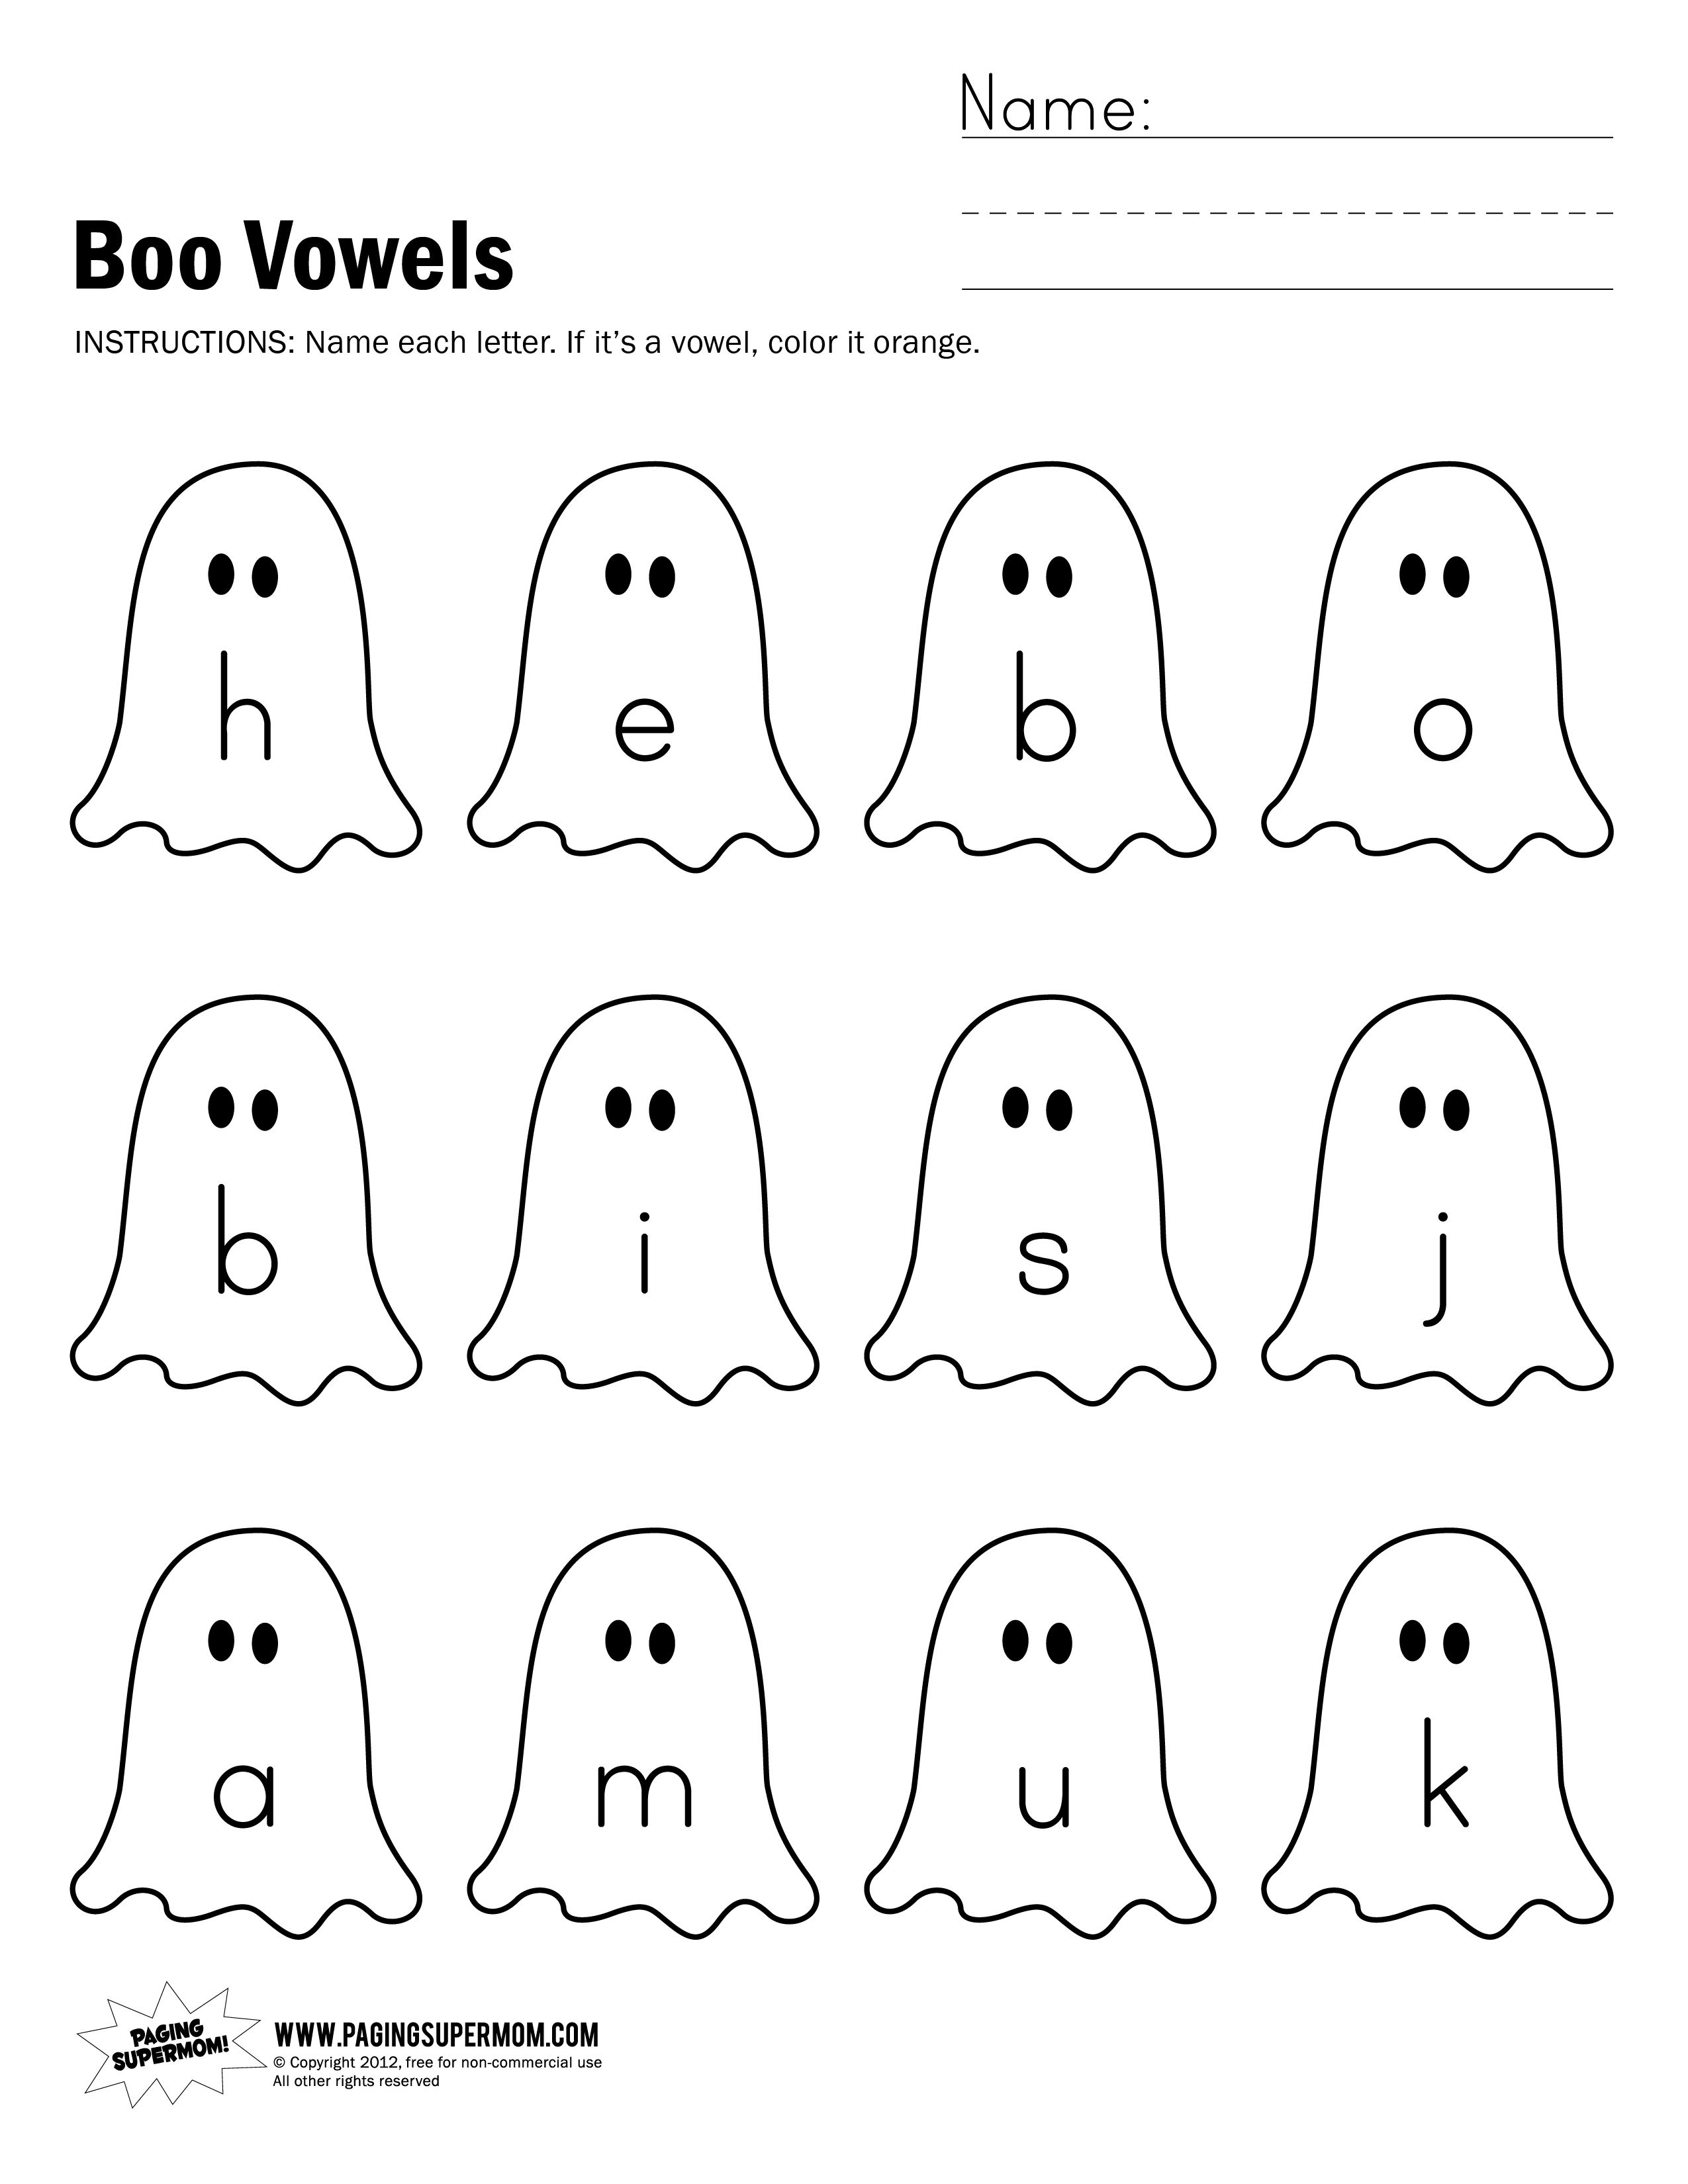 Boo Vowels Worksheet